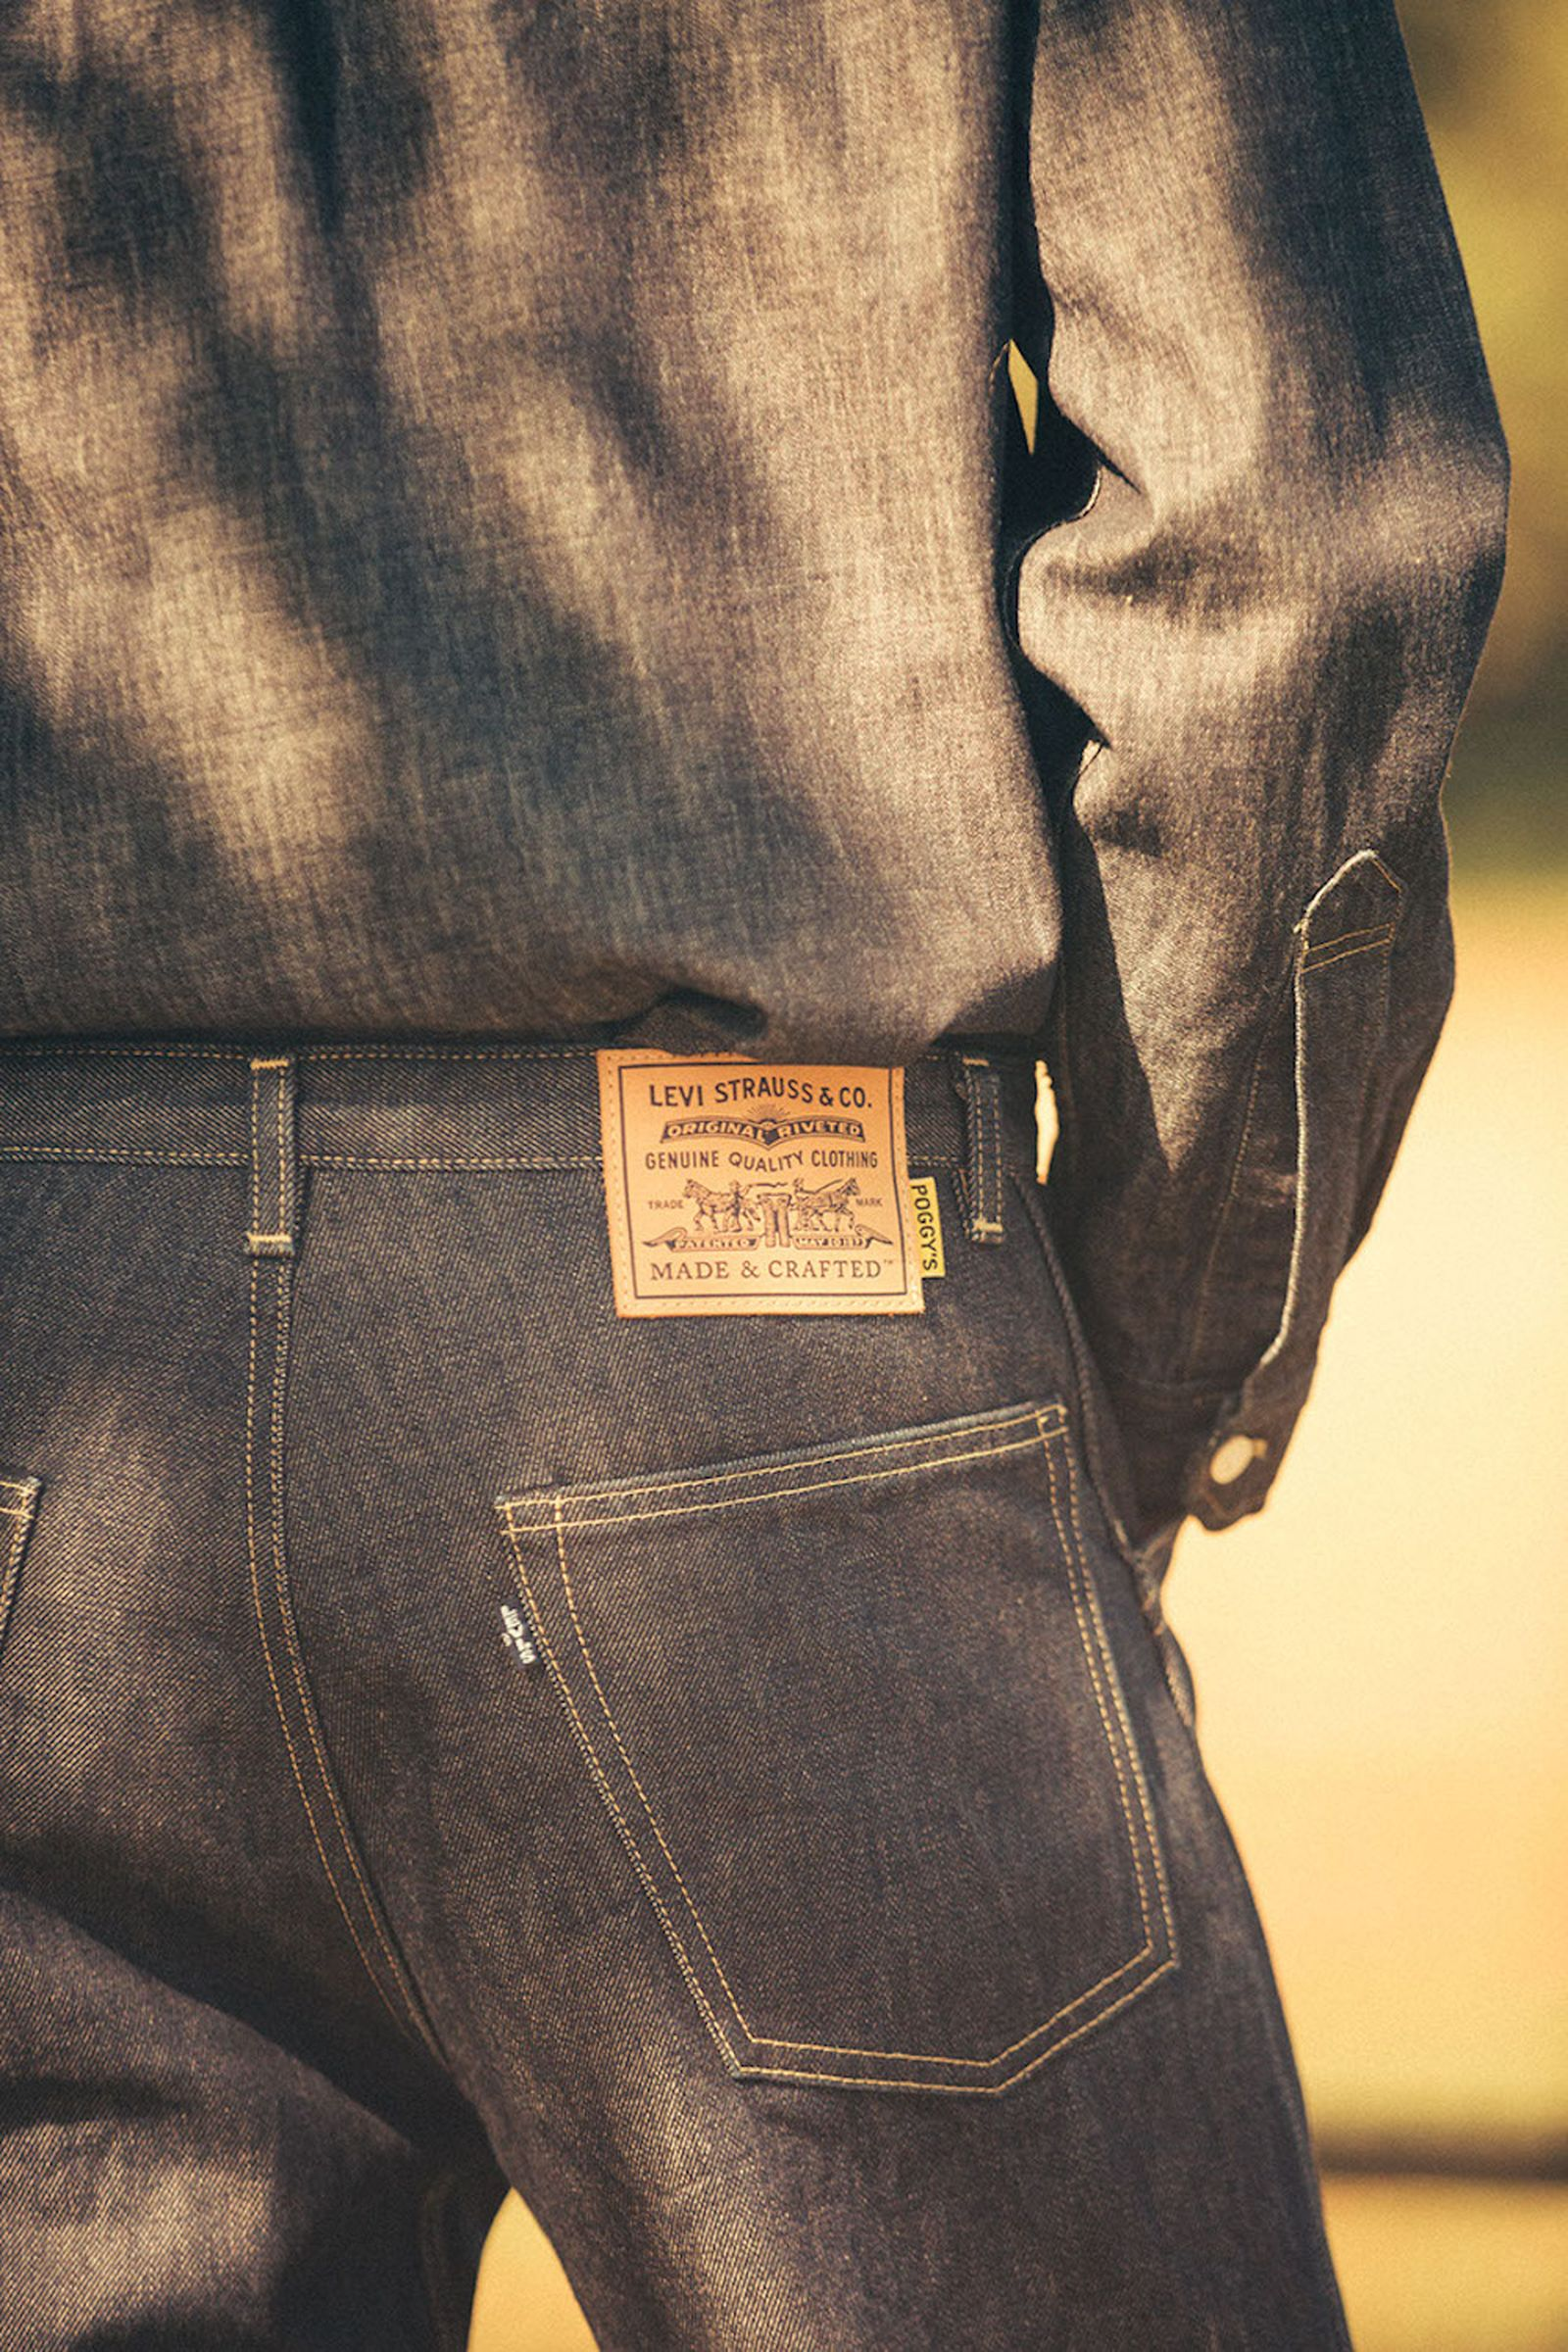 levis made and crafted poggytheman fw18 capsule levi's made & crafted